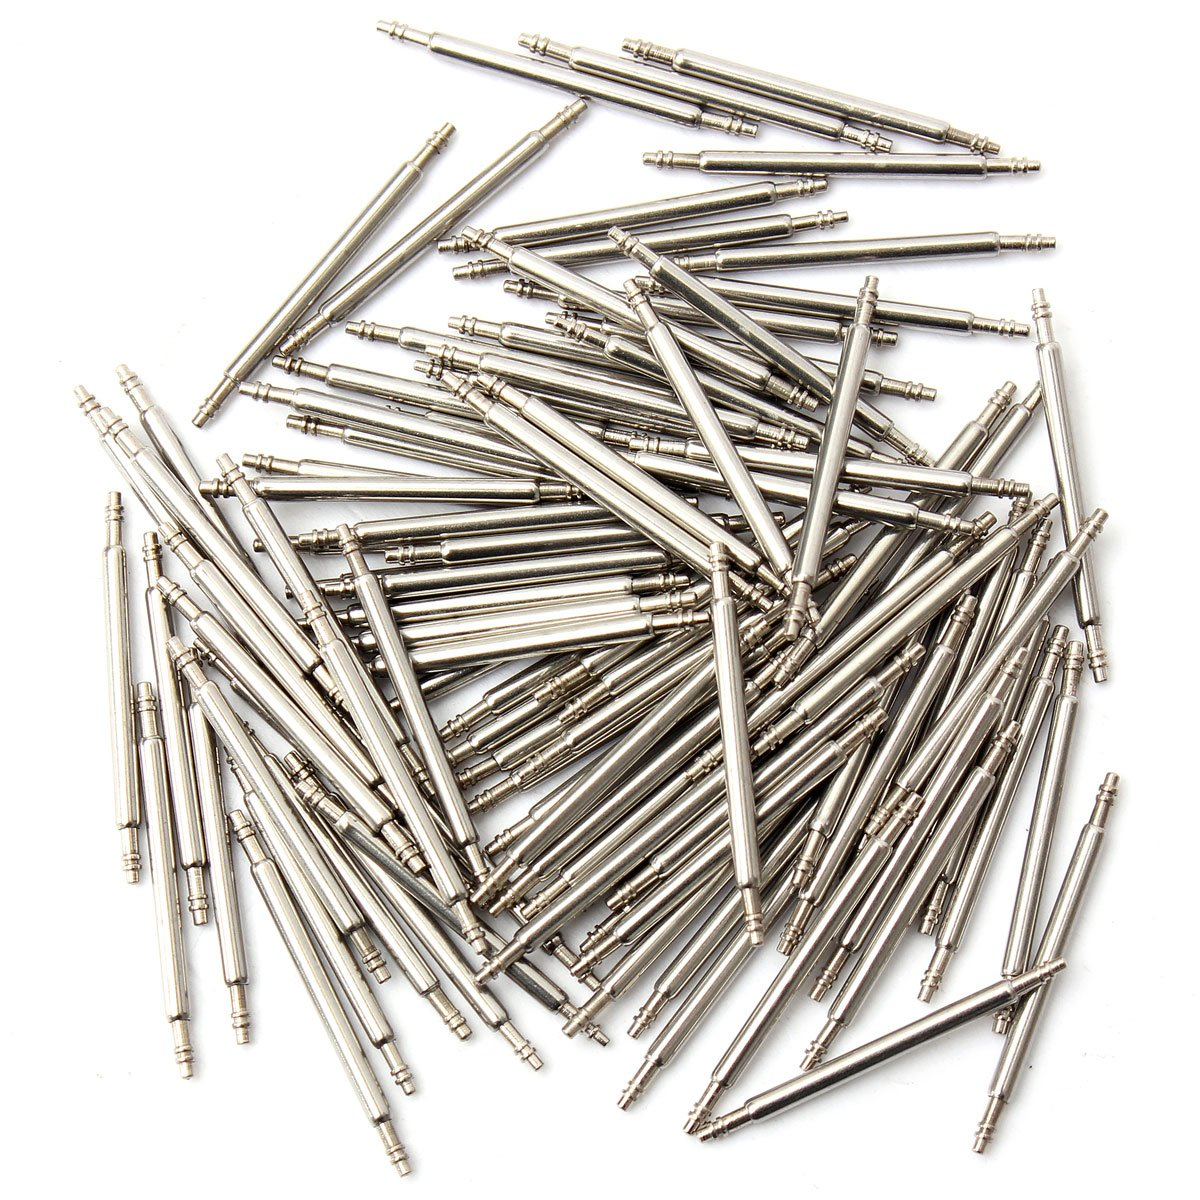 100 Pcs Spring Bar Stem Wristwatch Clock Repair Remover Tool 16mm